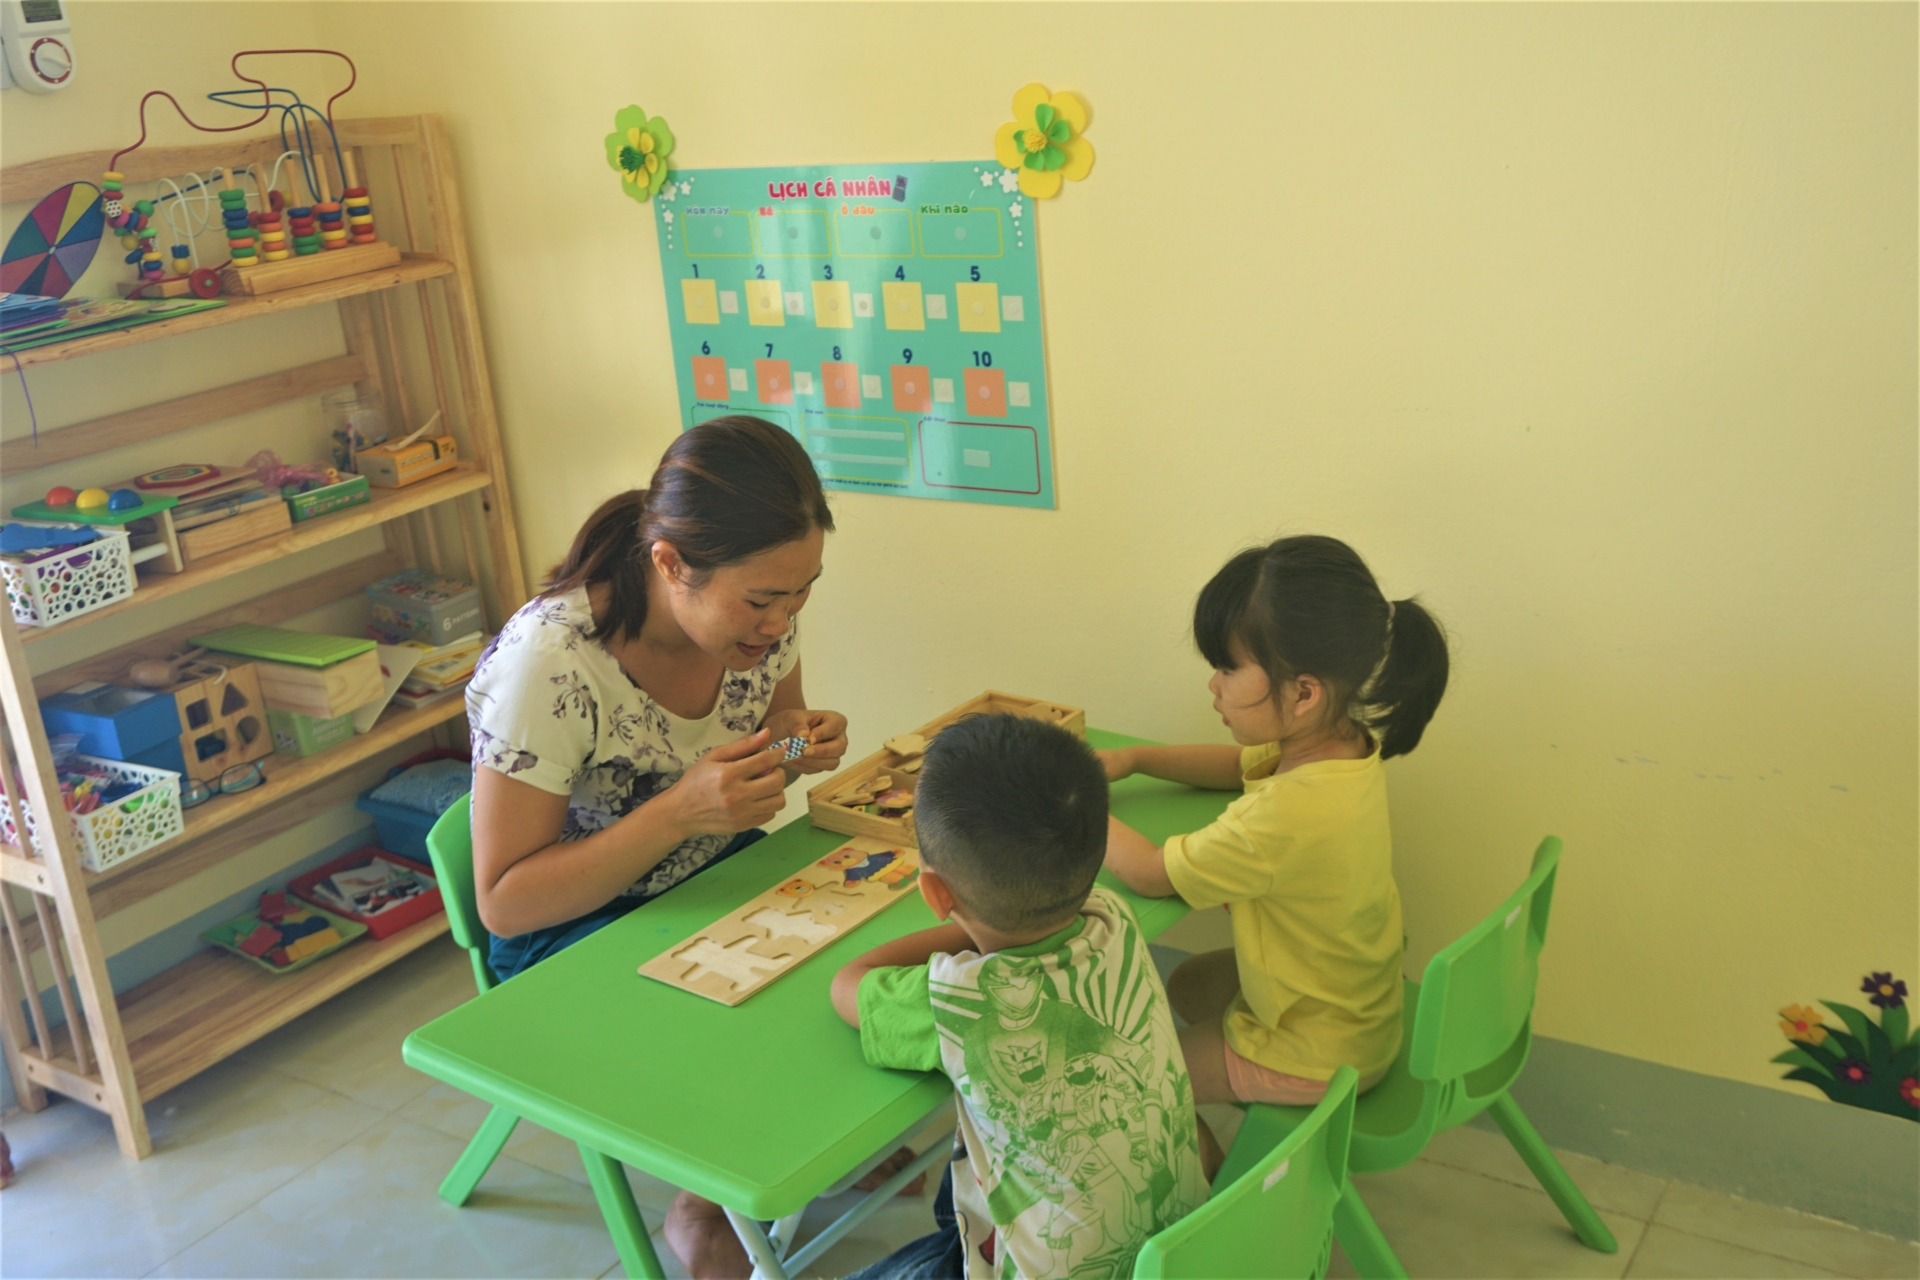 First Support Center for Inclusive Education Development in Dien Bien